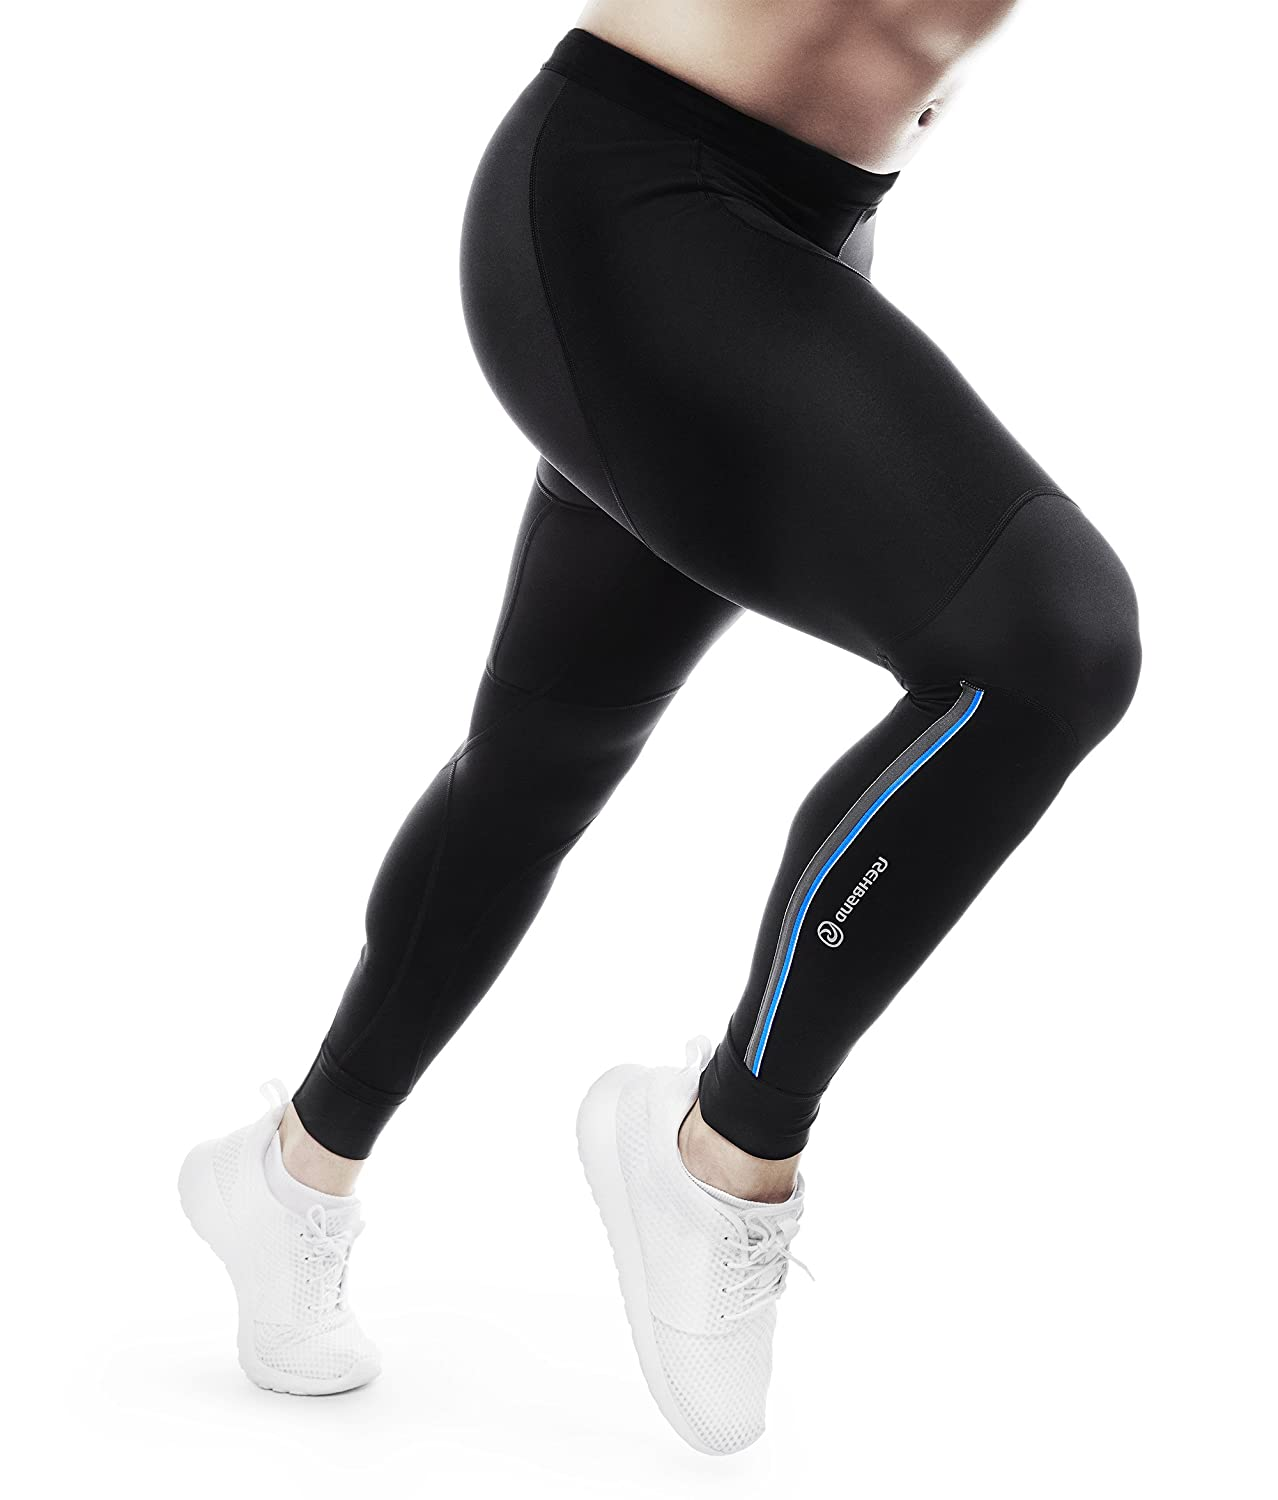 Rehband Herren Funktionswäsche 7787 Thermohose Thermohose 7787 Athletic lang 036408